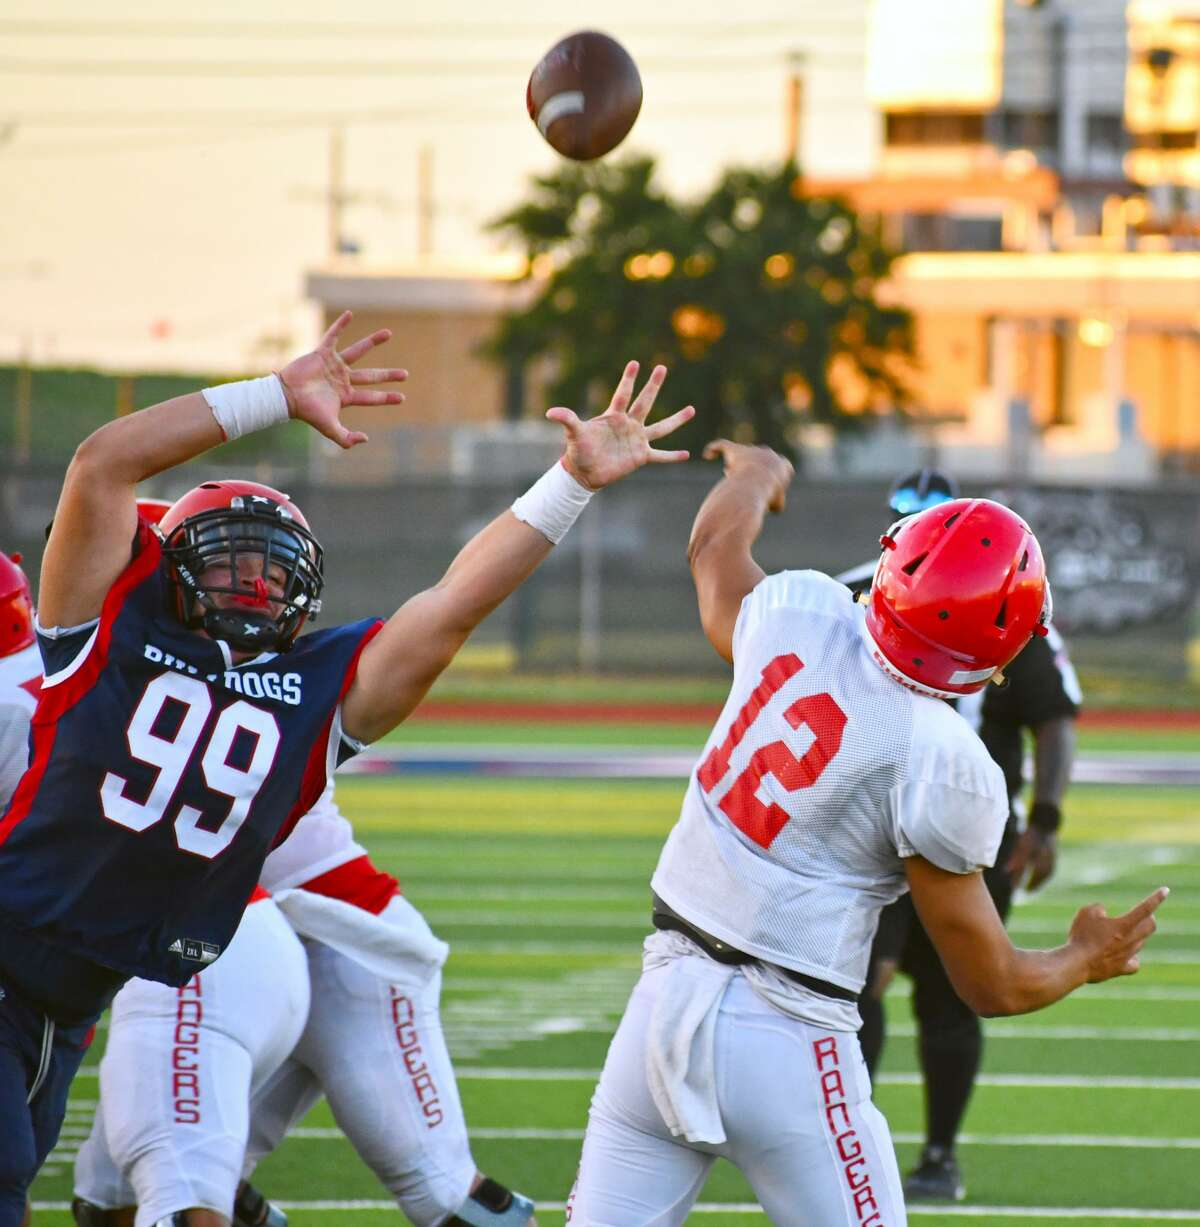 Plainview's Justice Deleon tries to defend the pass of Perryton's Abraham Hernandez during their preseason scrimmage on Aug. 20. The Bulldogs will return to Greg Sherwood Memorial Bulldog Stadium for their home opener on Friday against Amarillo Palo Duro.